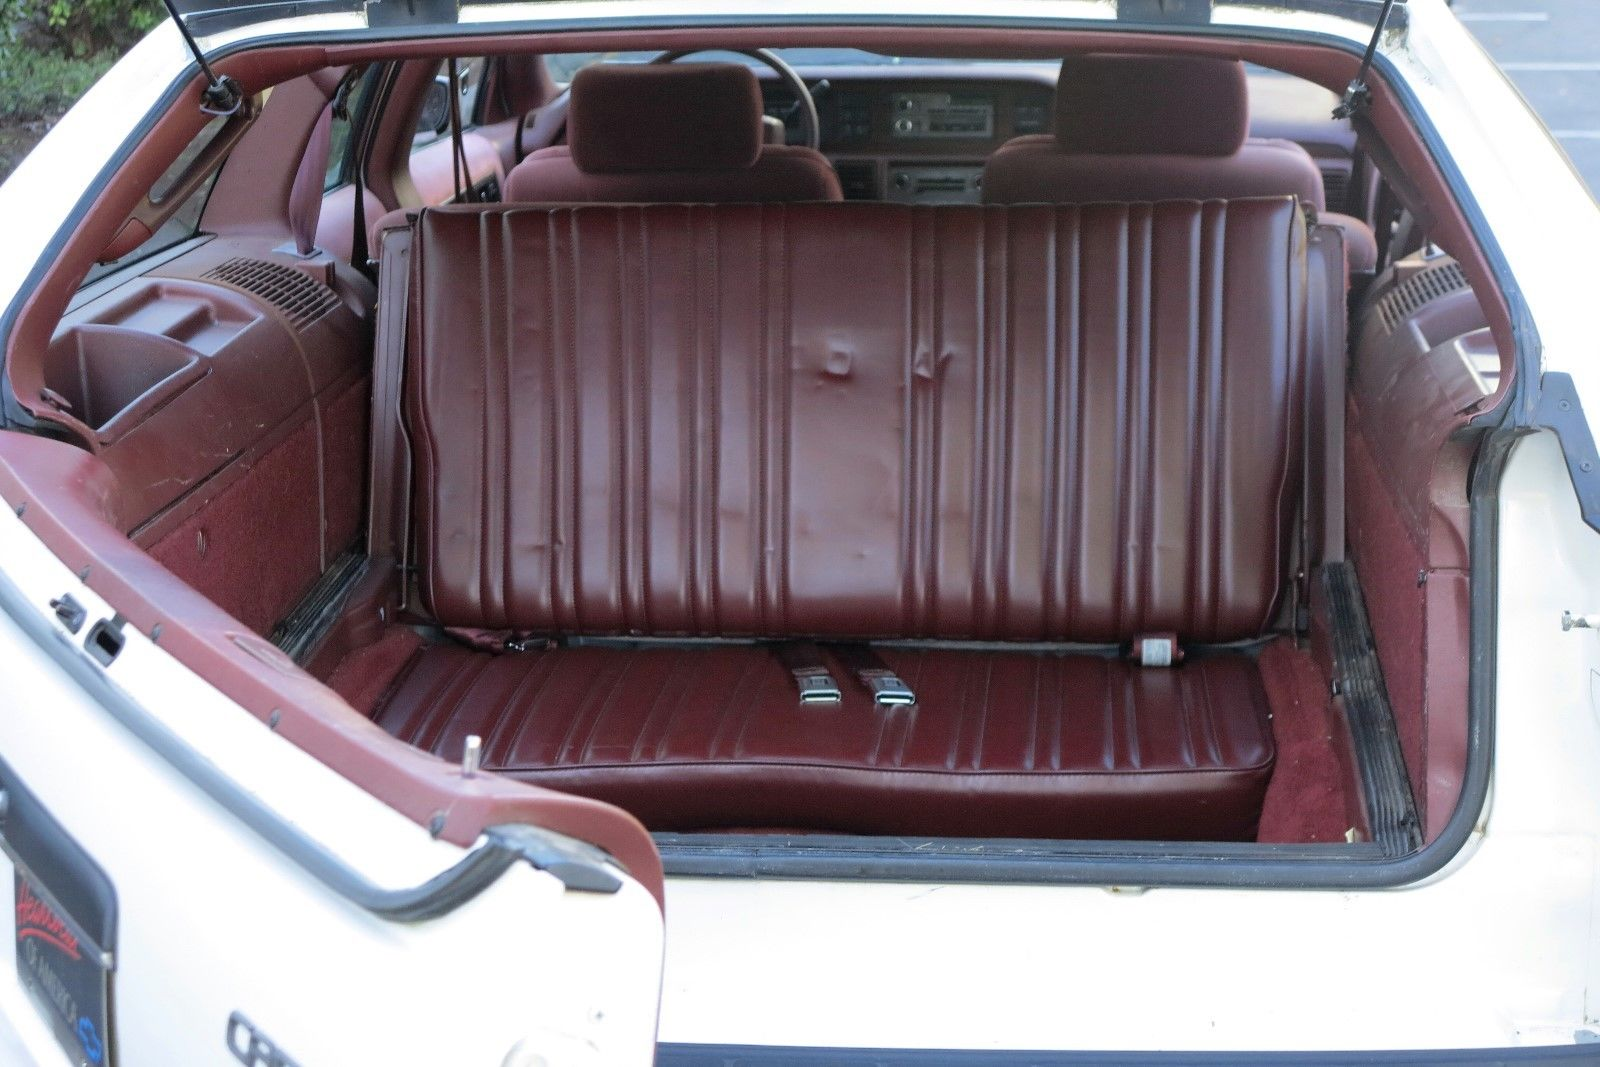 1991 Chevrolet Caprice Classic Wagon third row rear seat